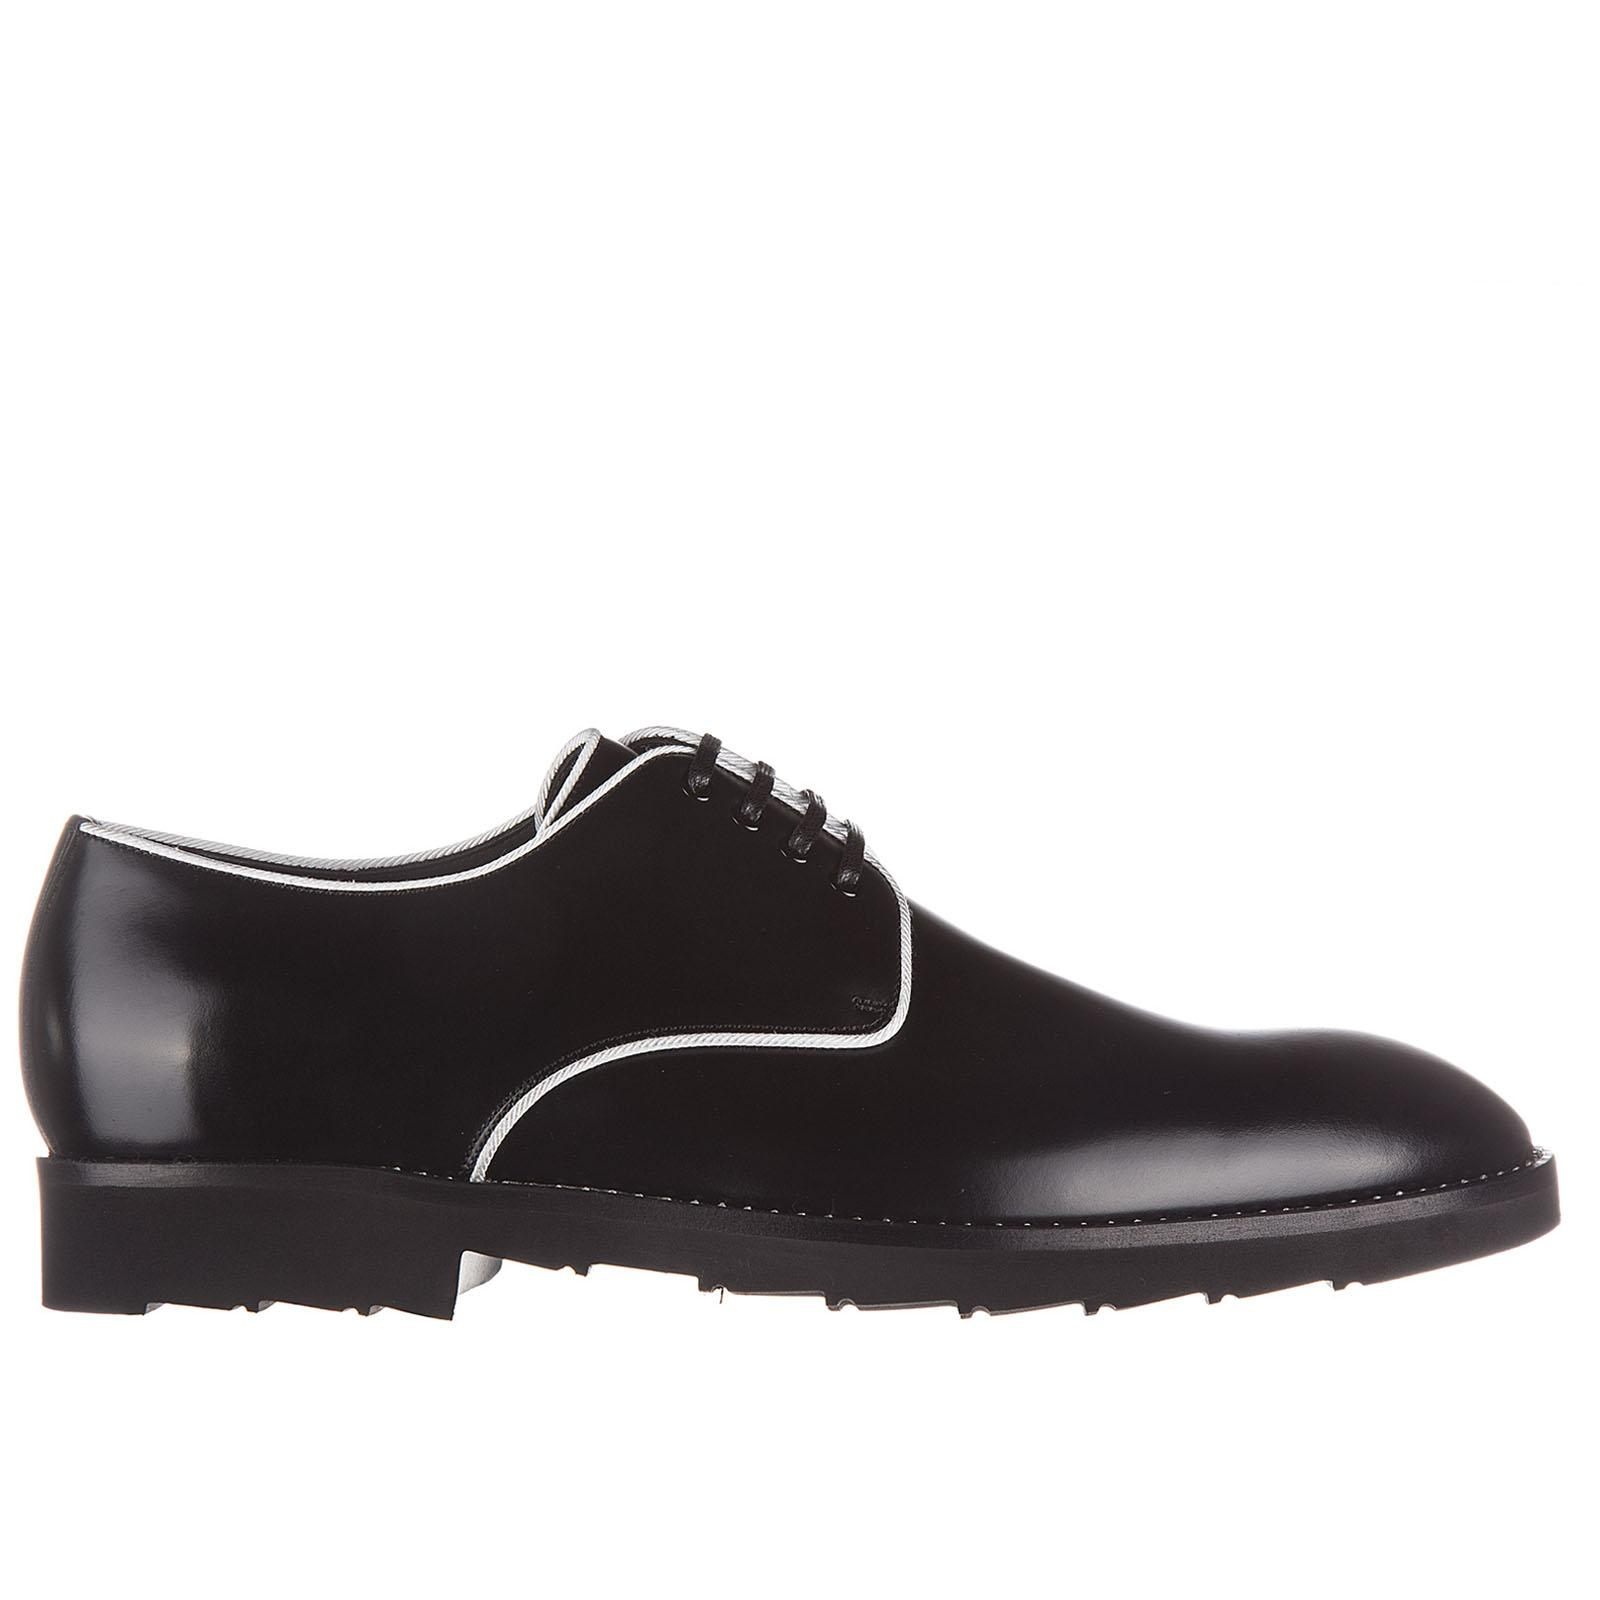 Lace up Shoes CORREGGIO in Leather Spring/summer Dolce & Gabbana 2wlbtll